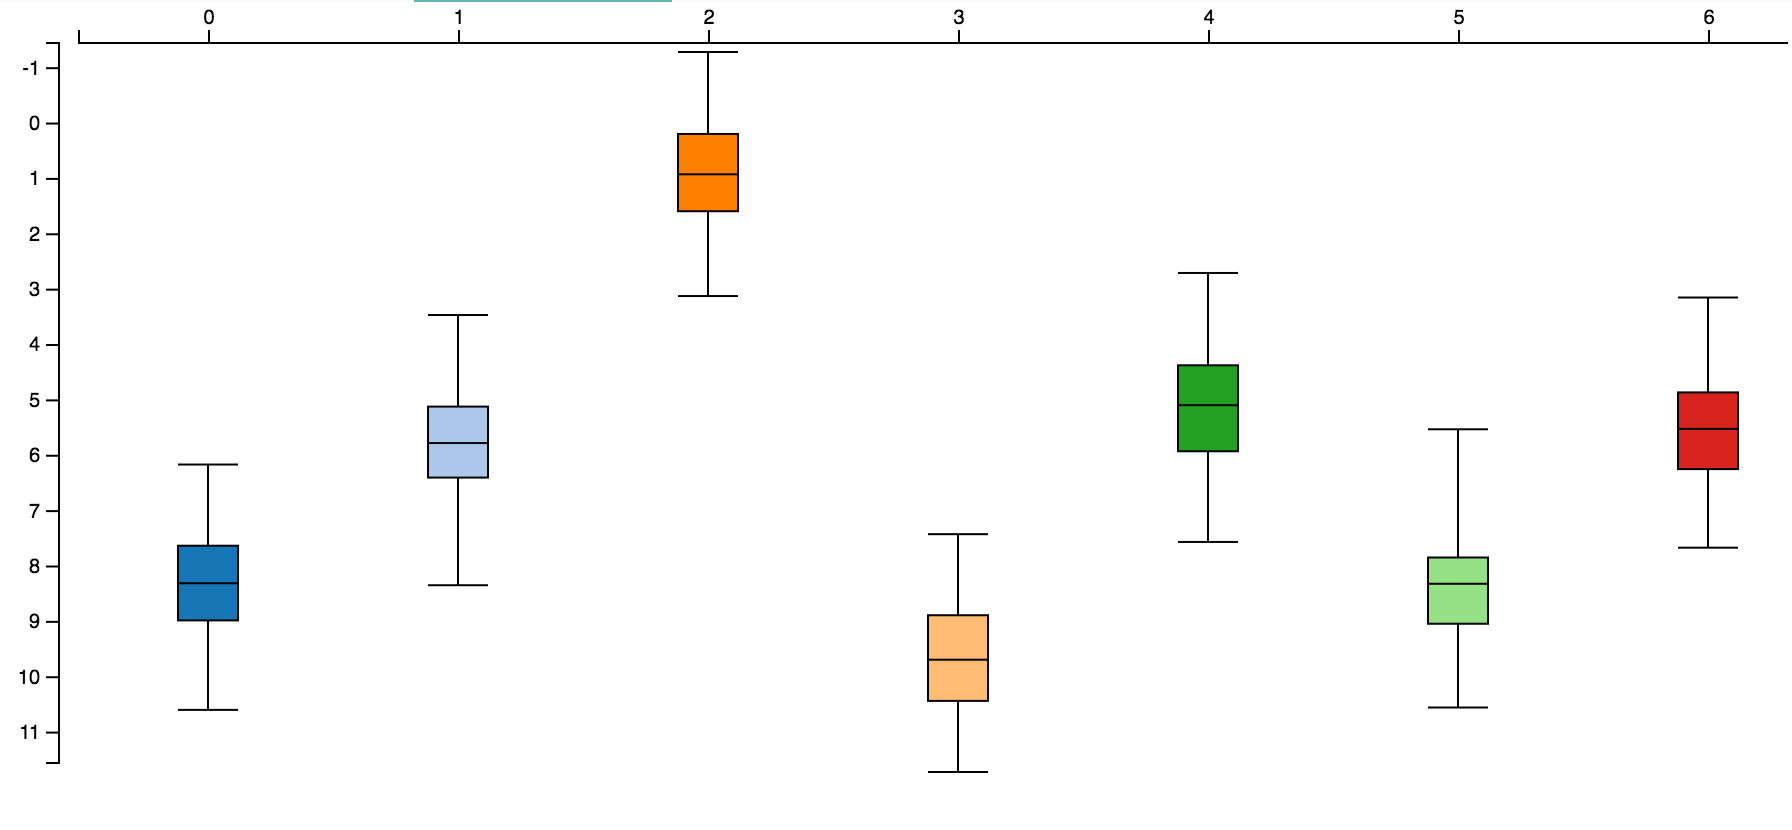 A Simple Box Plot in d3 js v4 0 - Data Syndrome